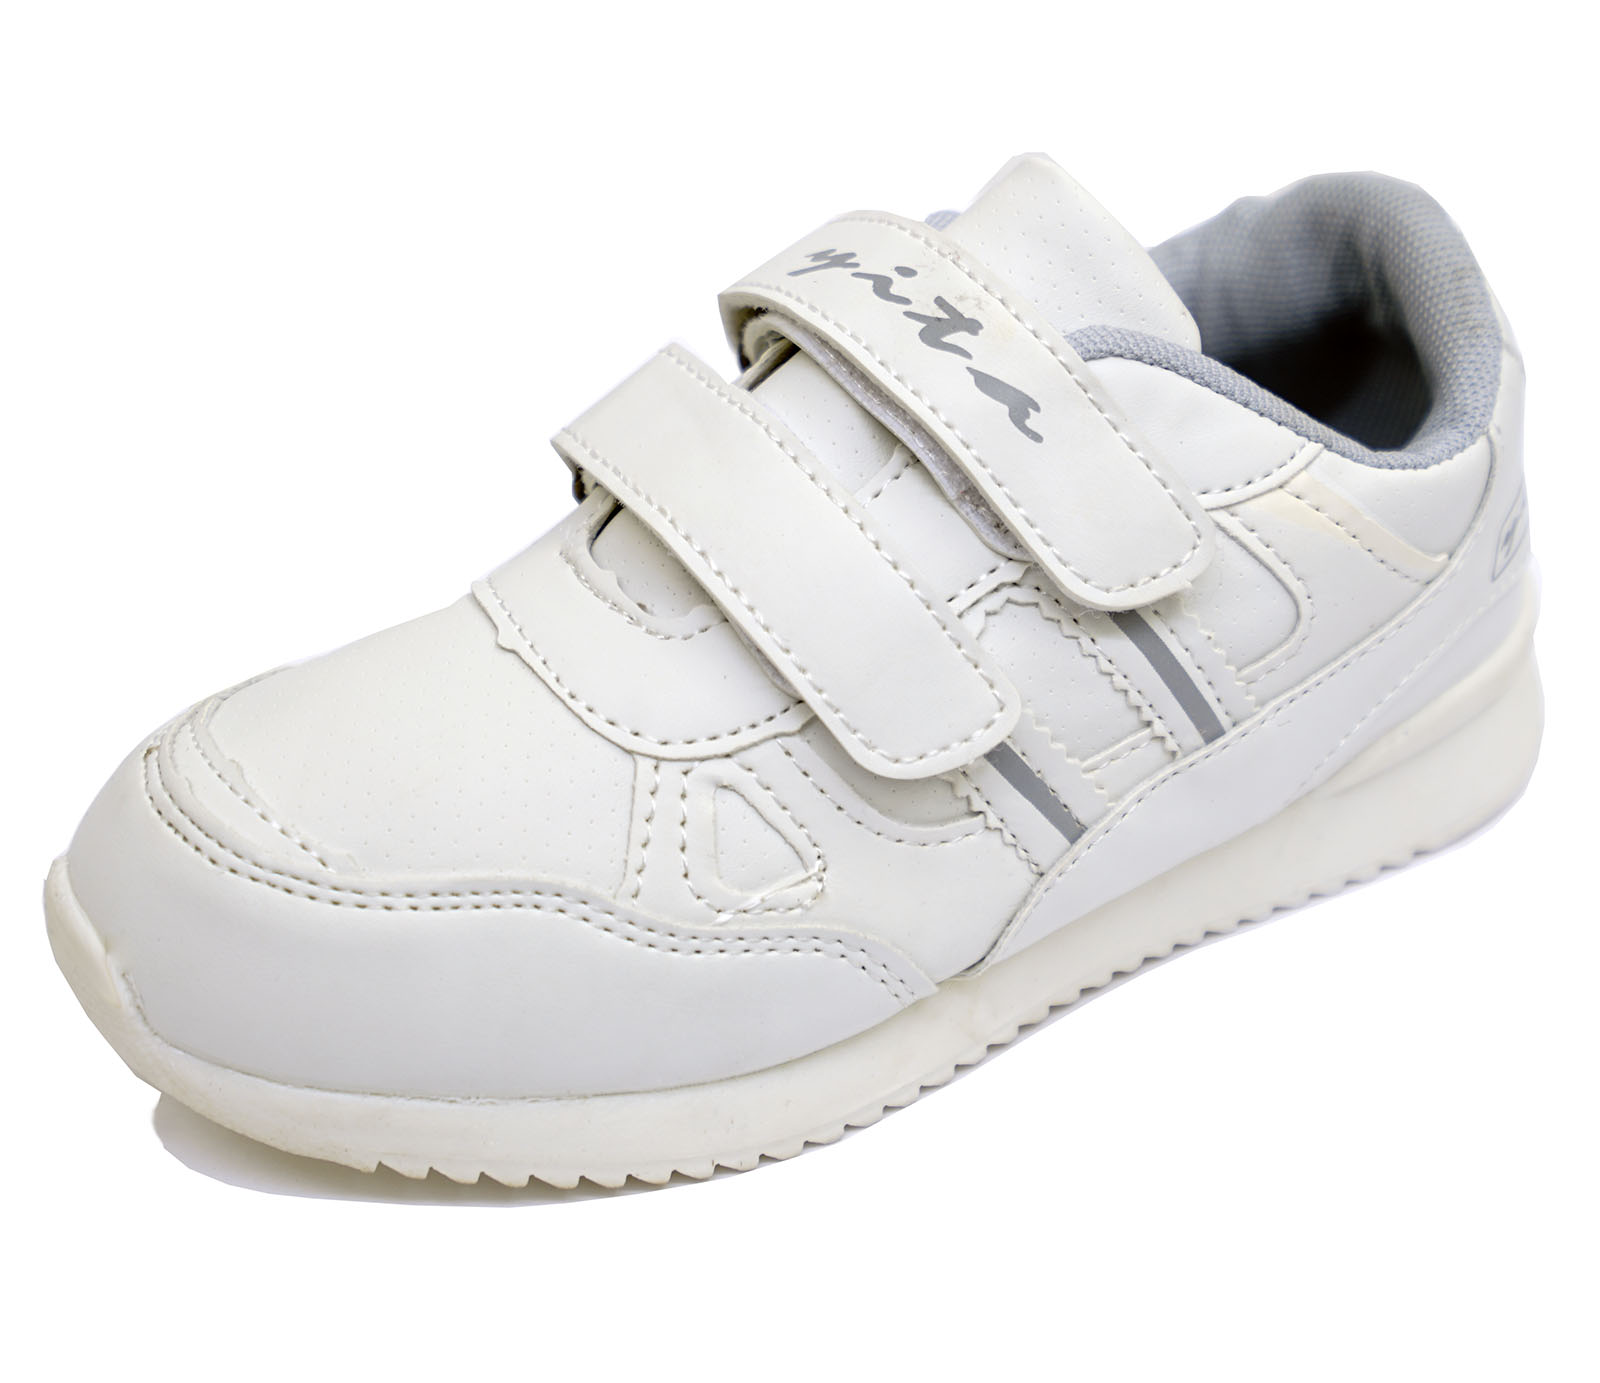 5644fd37d861 BOYS GIRLS KIDS CHILDRENS WHITE SPORTS TRAINERS SCHOOL SHOES ...